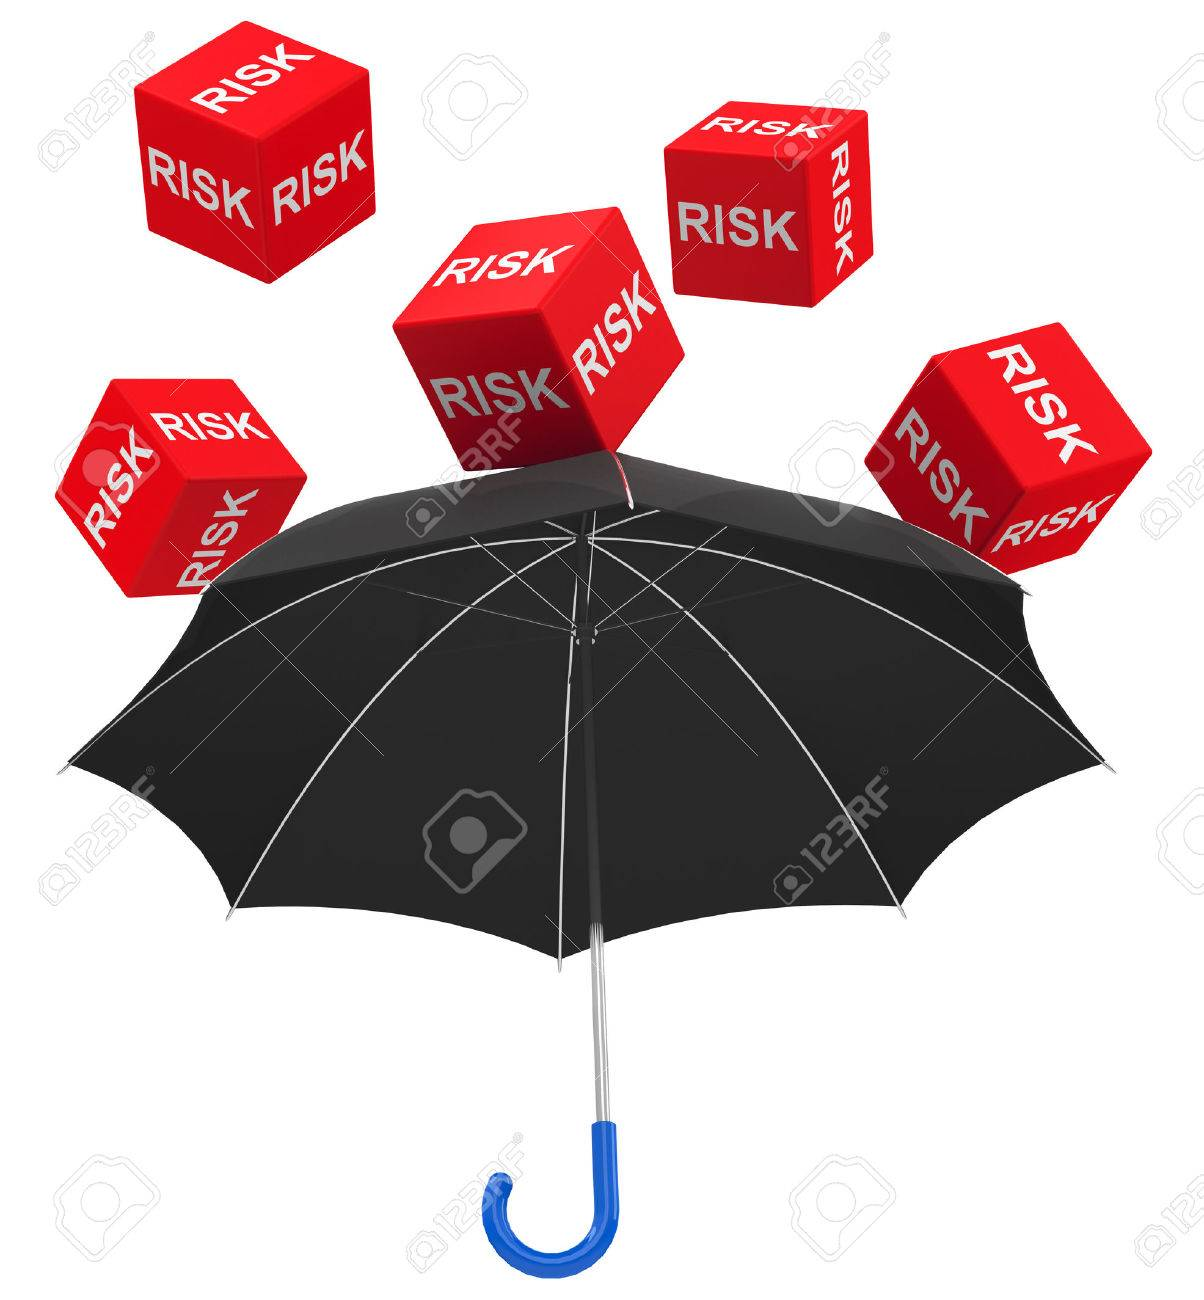 risk protection - 27977770